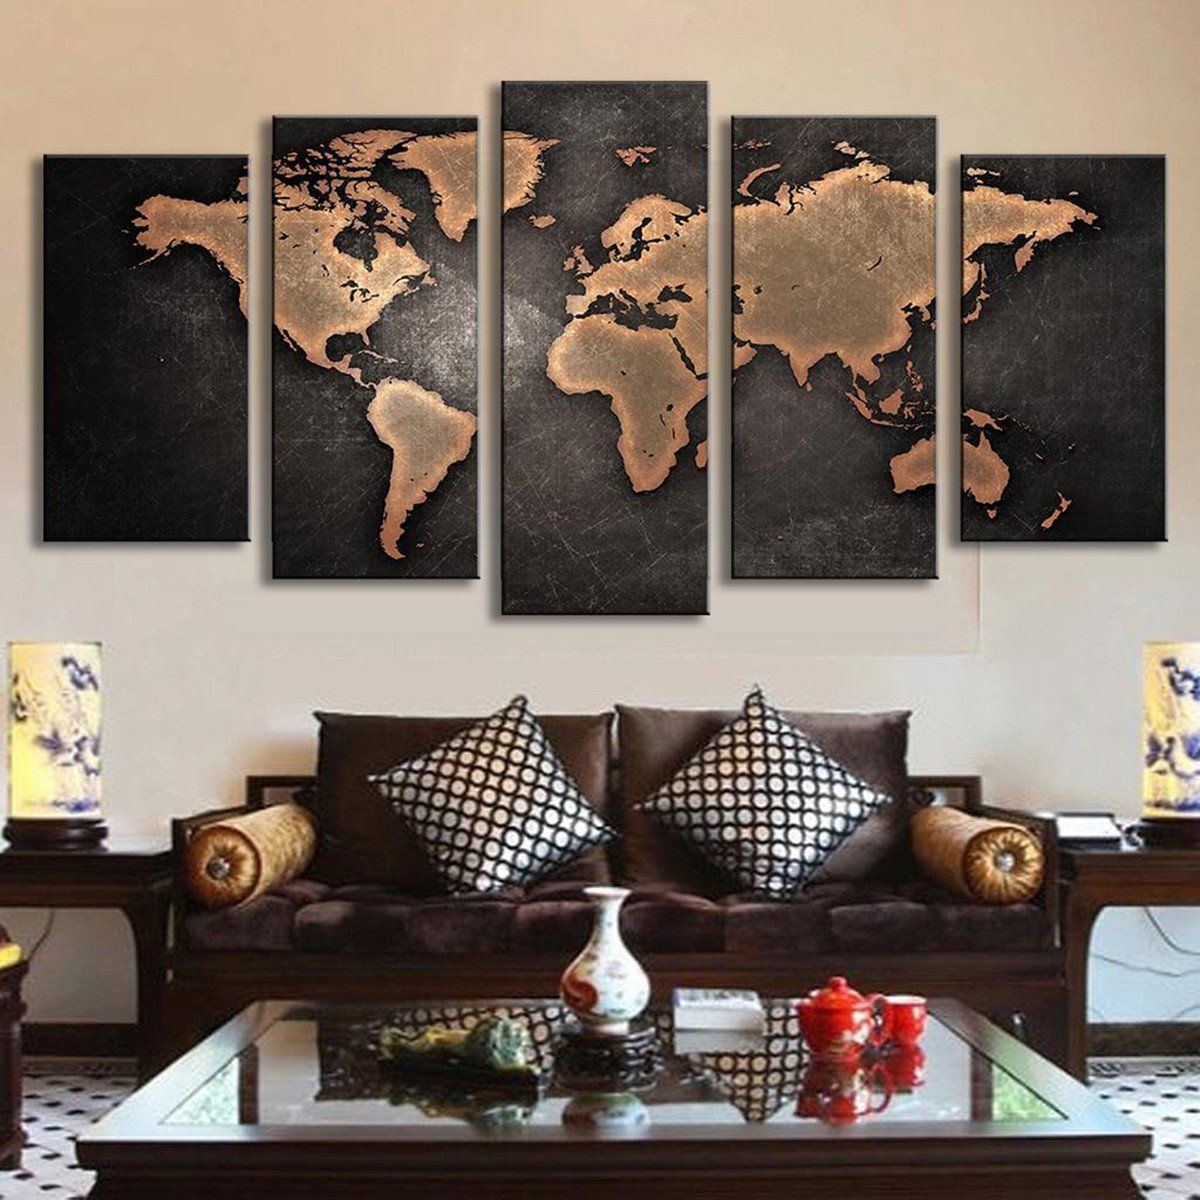 Mivyy frameless huge modern abstract world map wall art canvas mivyy frameless huge modern abstract world map wall art canvas painting for living room home gumiabroncs Gallery